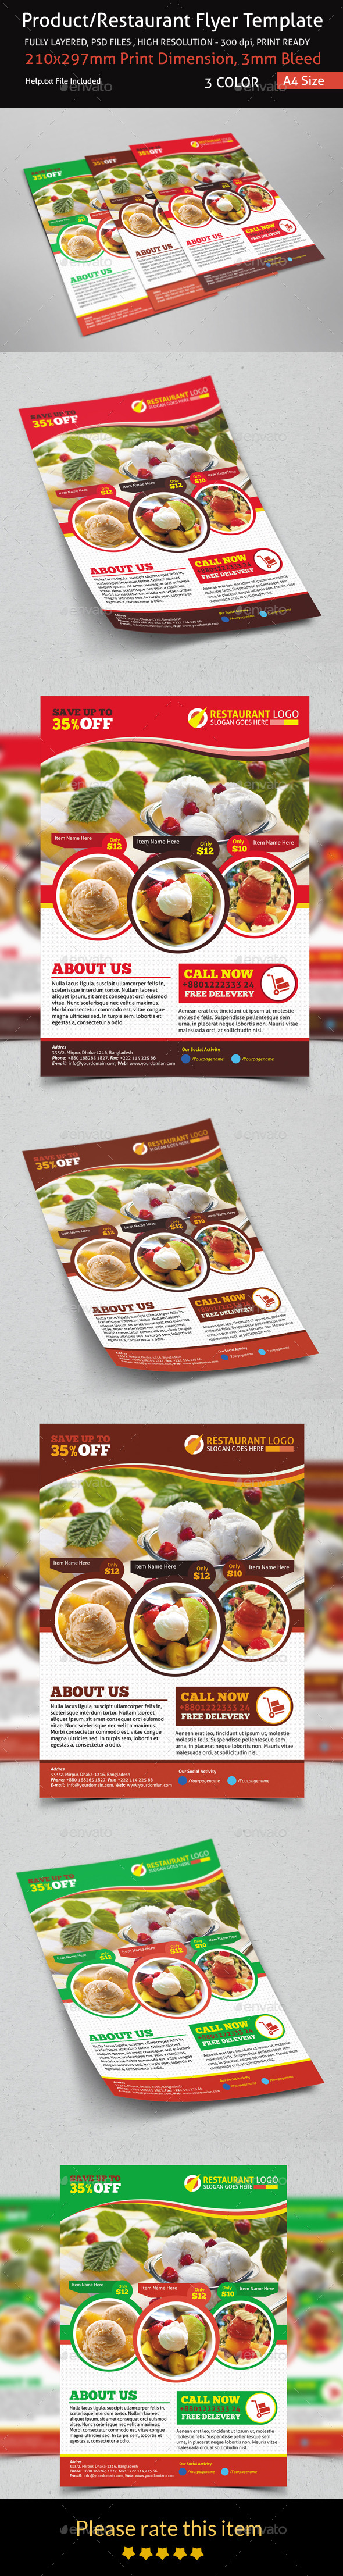 GraphicRiver Product Restaurant Flyer Template 8998348